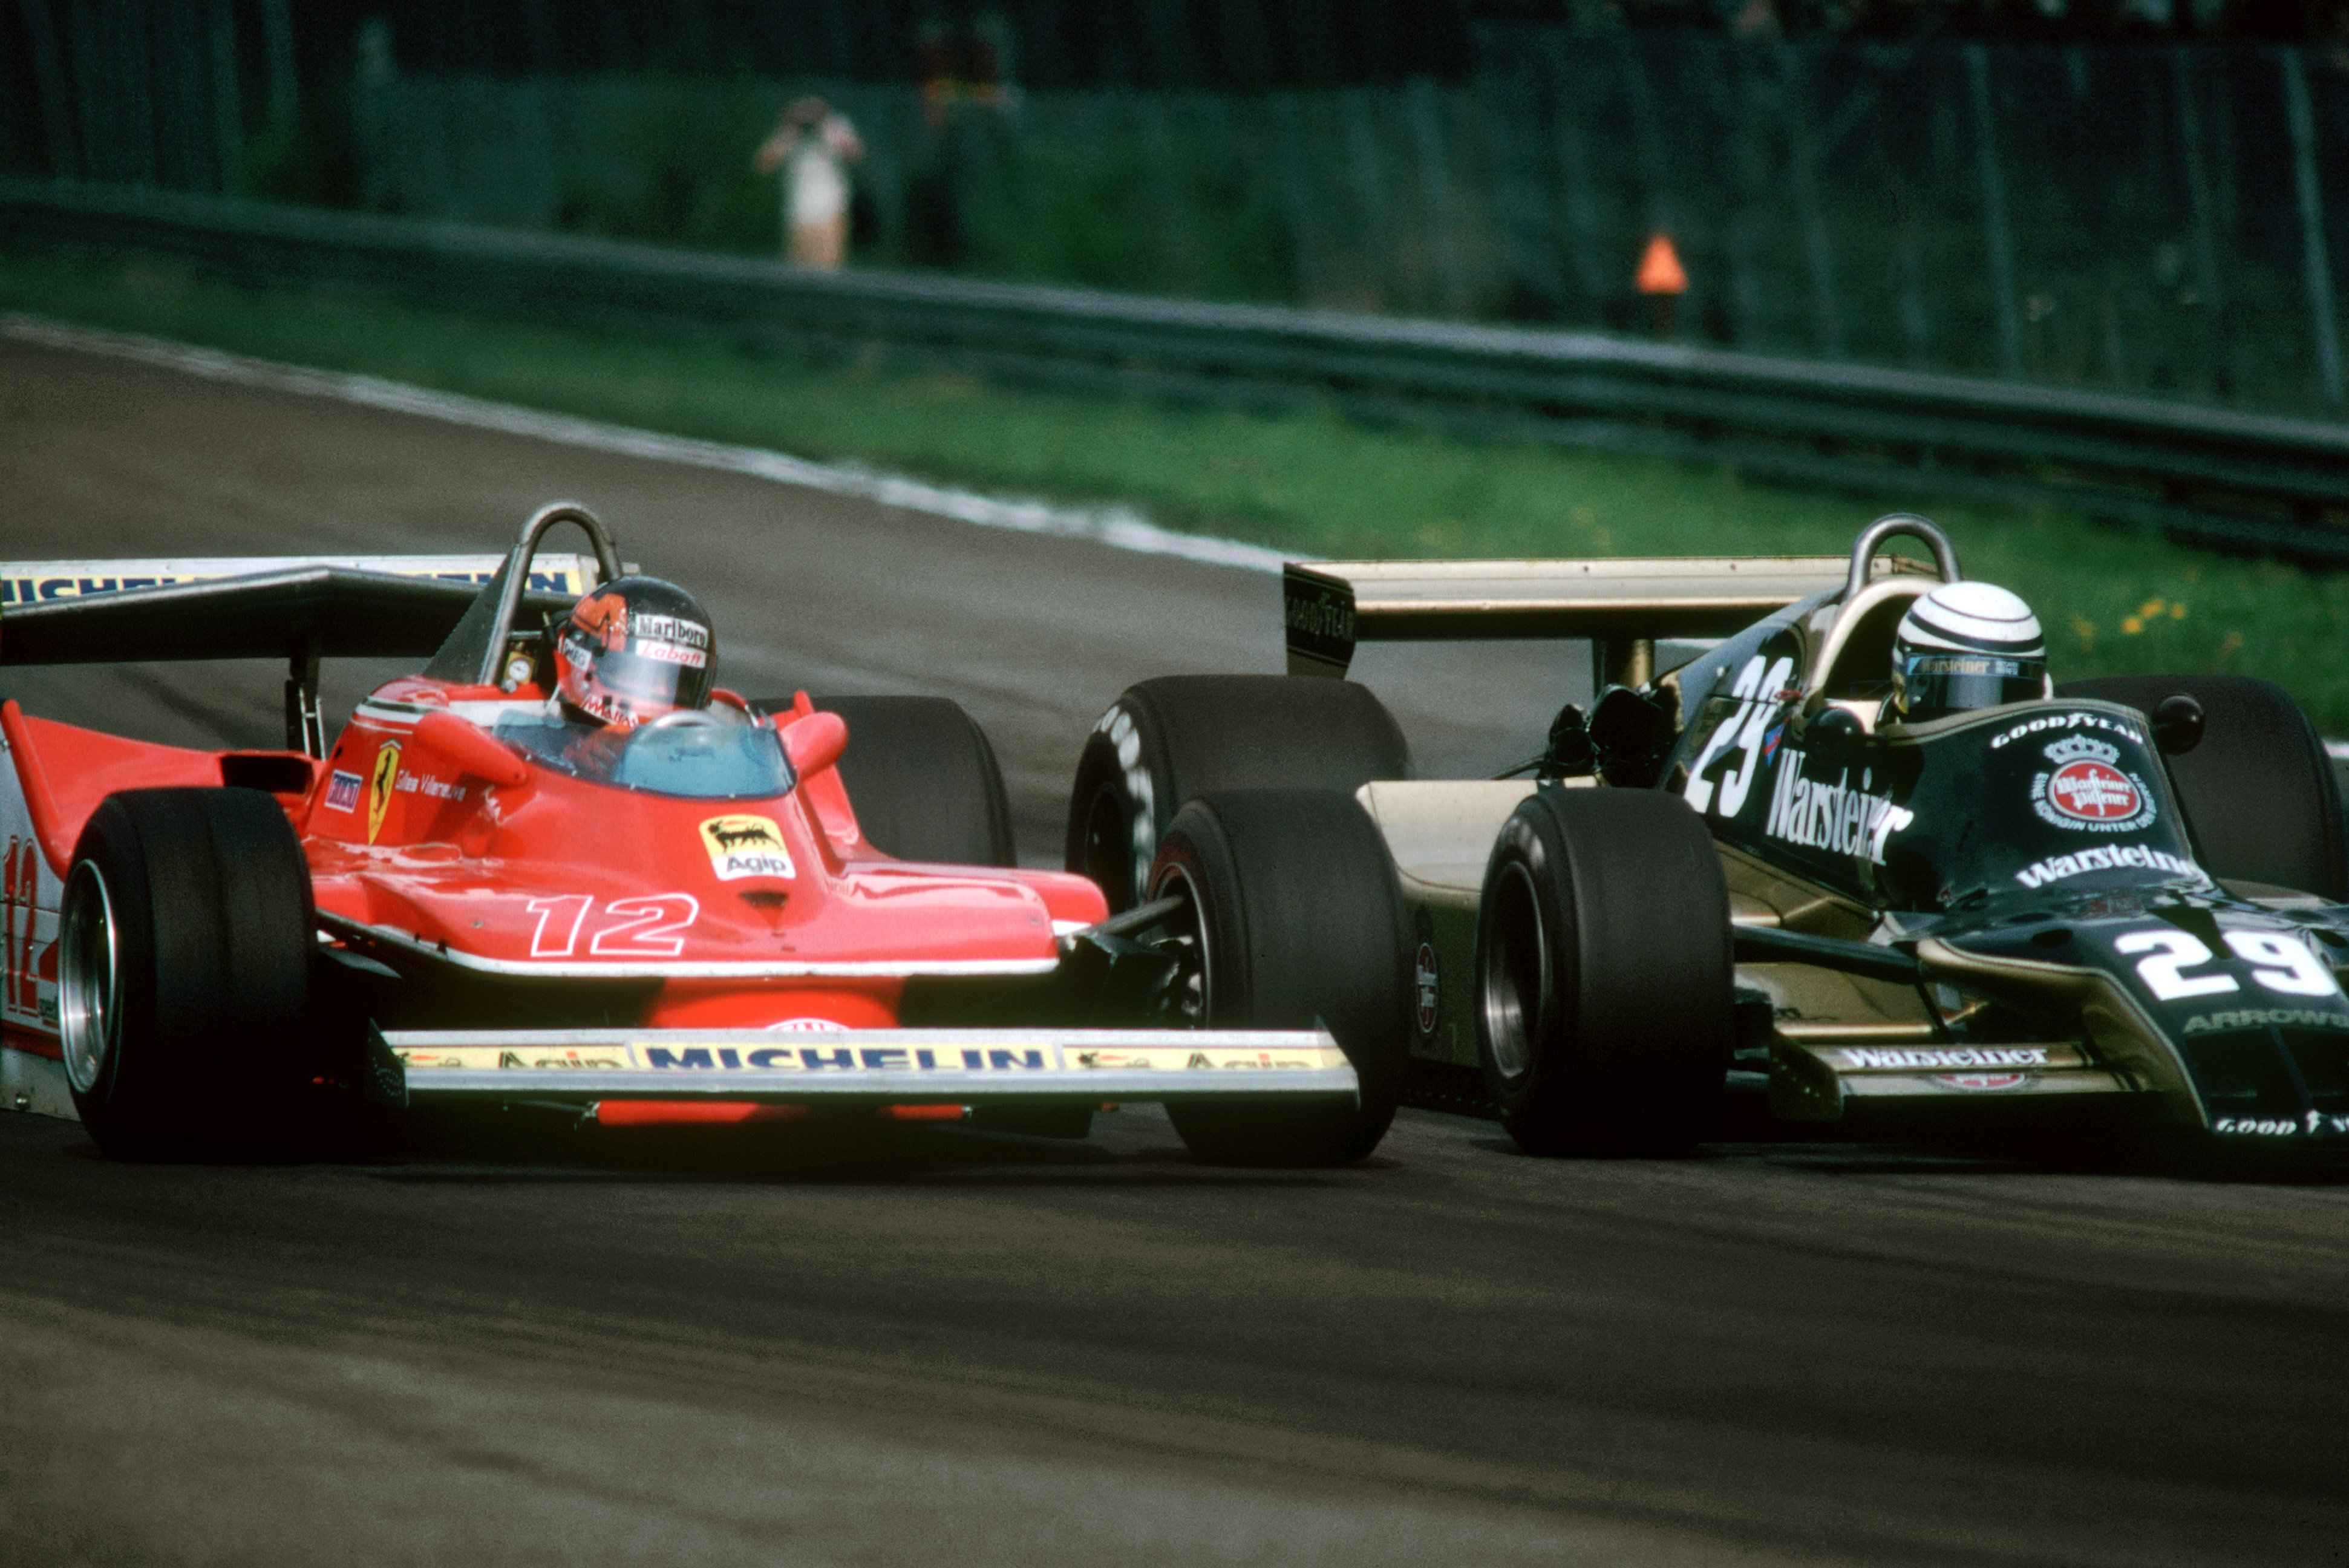 Racing Car Pictures Wallpaper File Gilles Villeneuve And Riccardo Patrese Zolder 1979